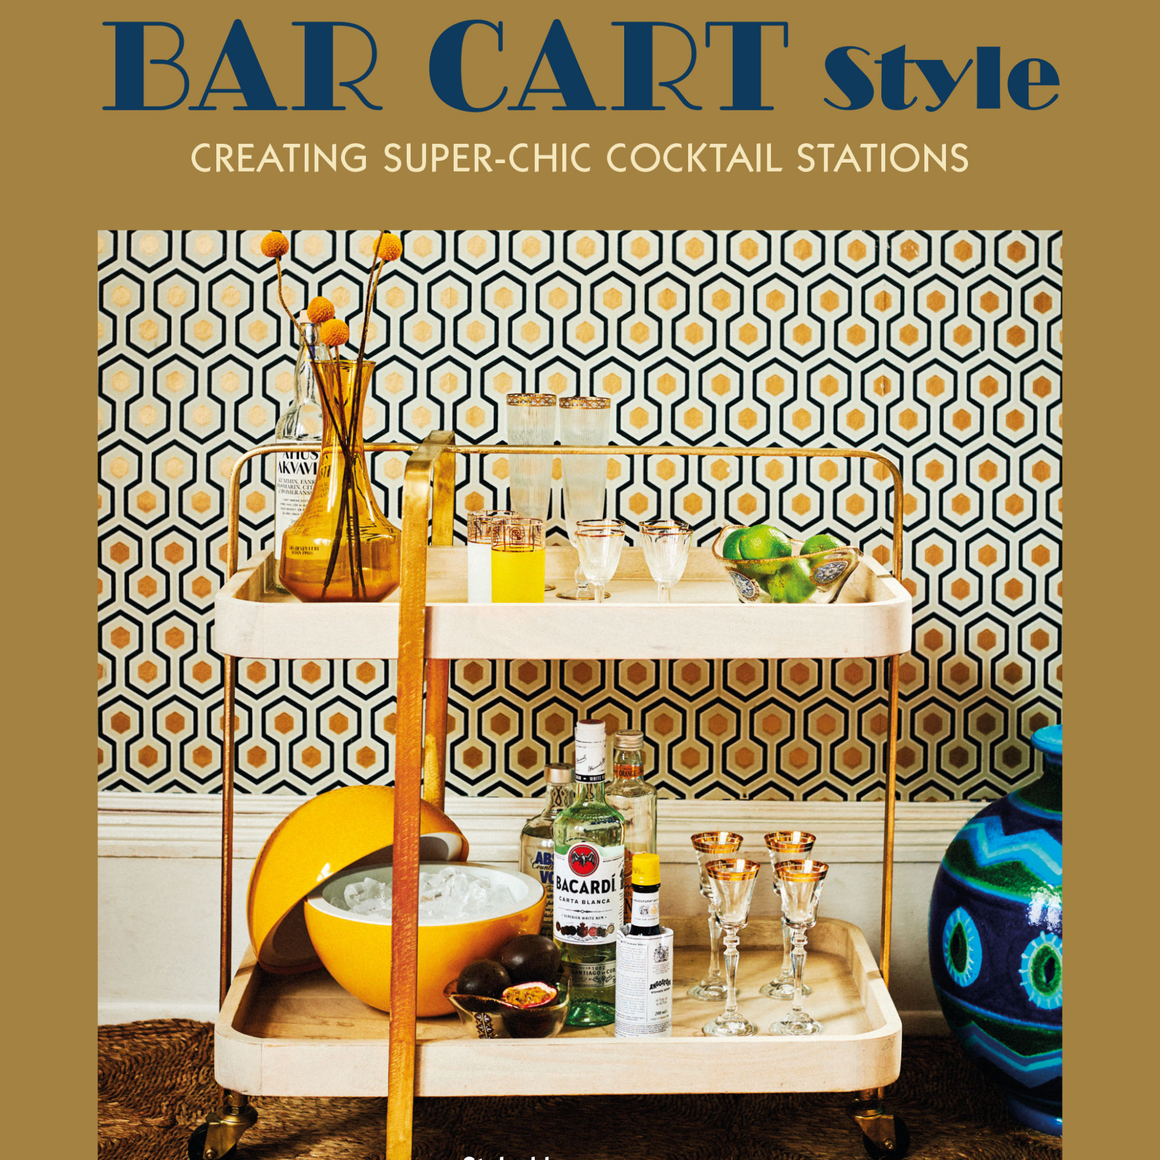 BAR CART STYLE / RYLAND PETERS & SMALL